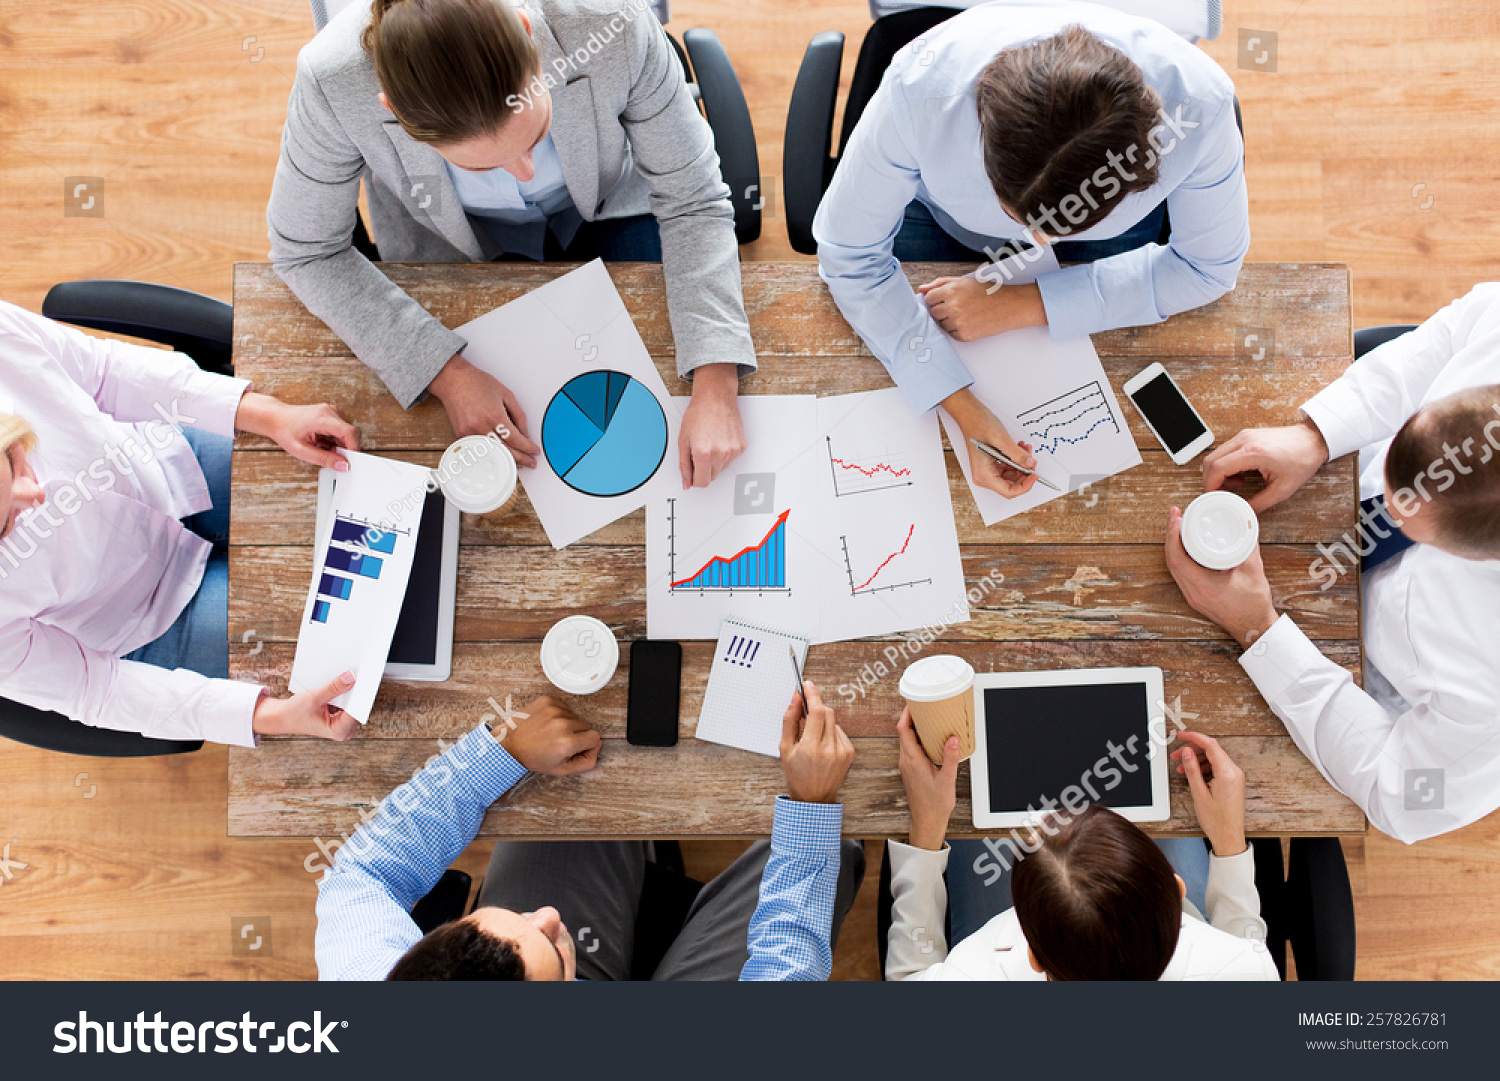 business people statistics team work concept stock photo  business people statistics and team work concept close up of creative team